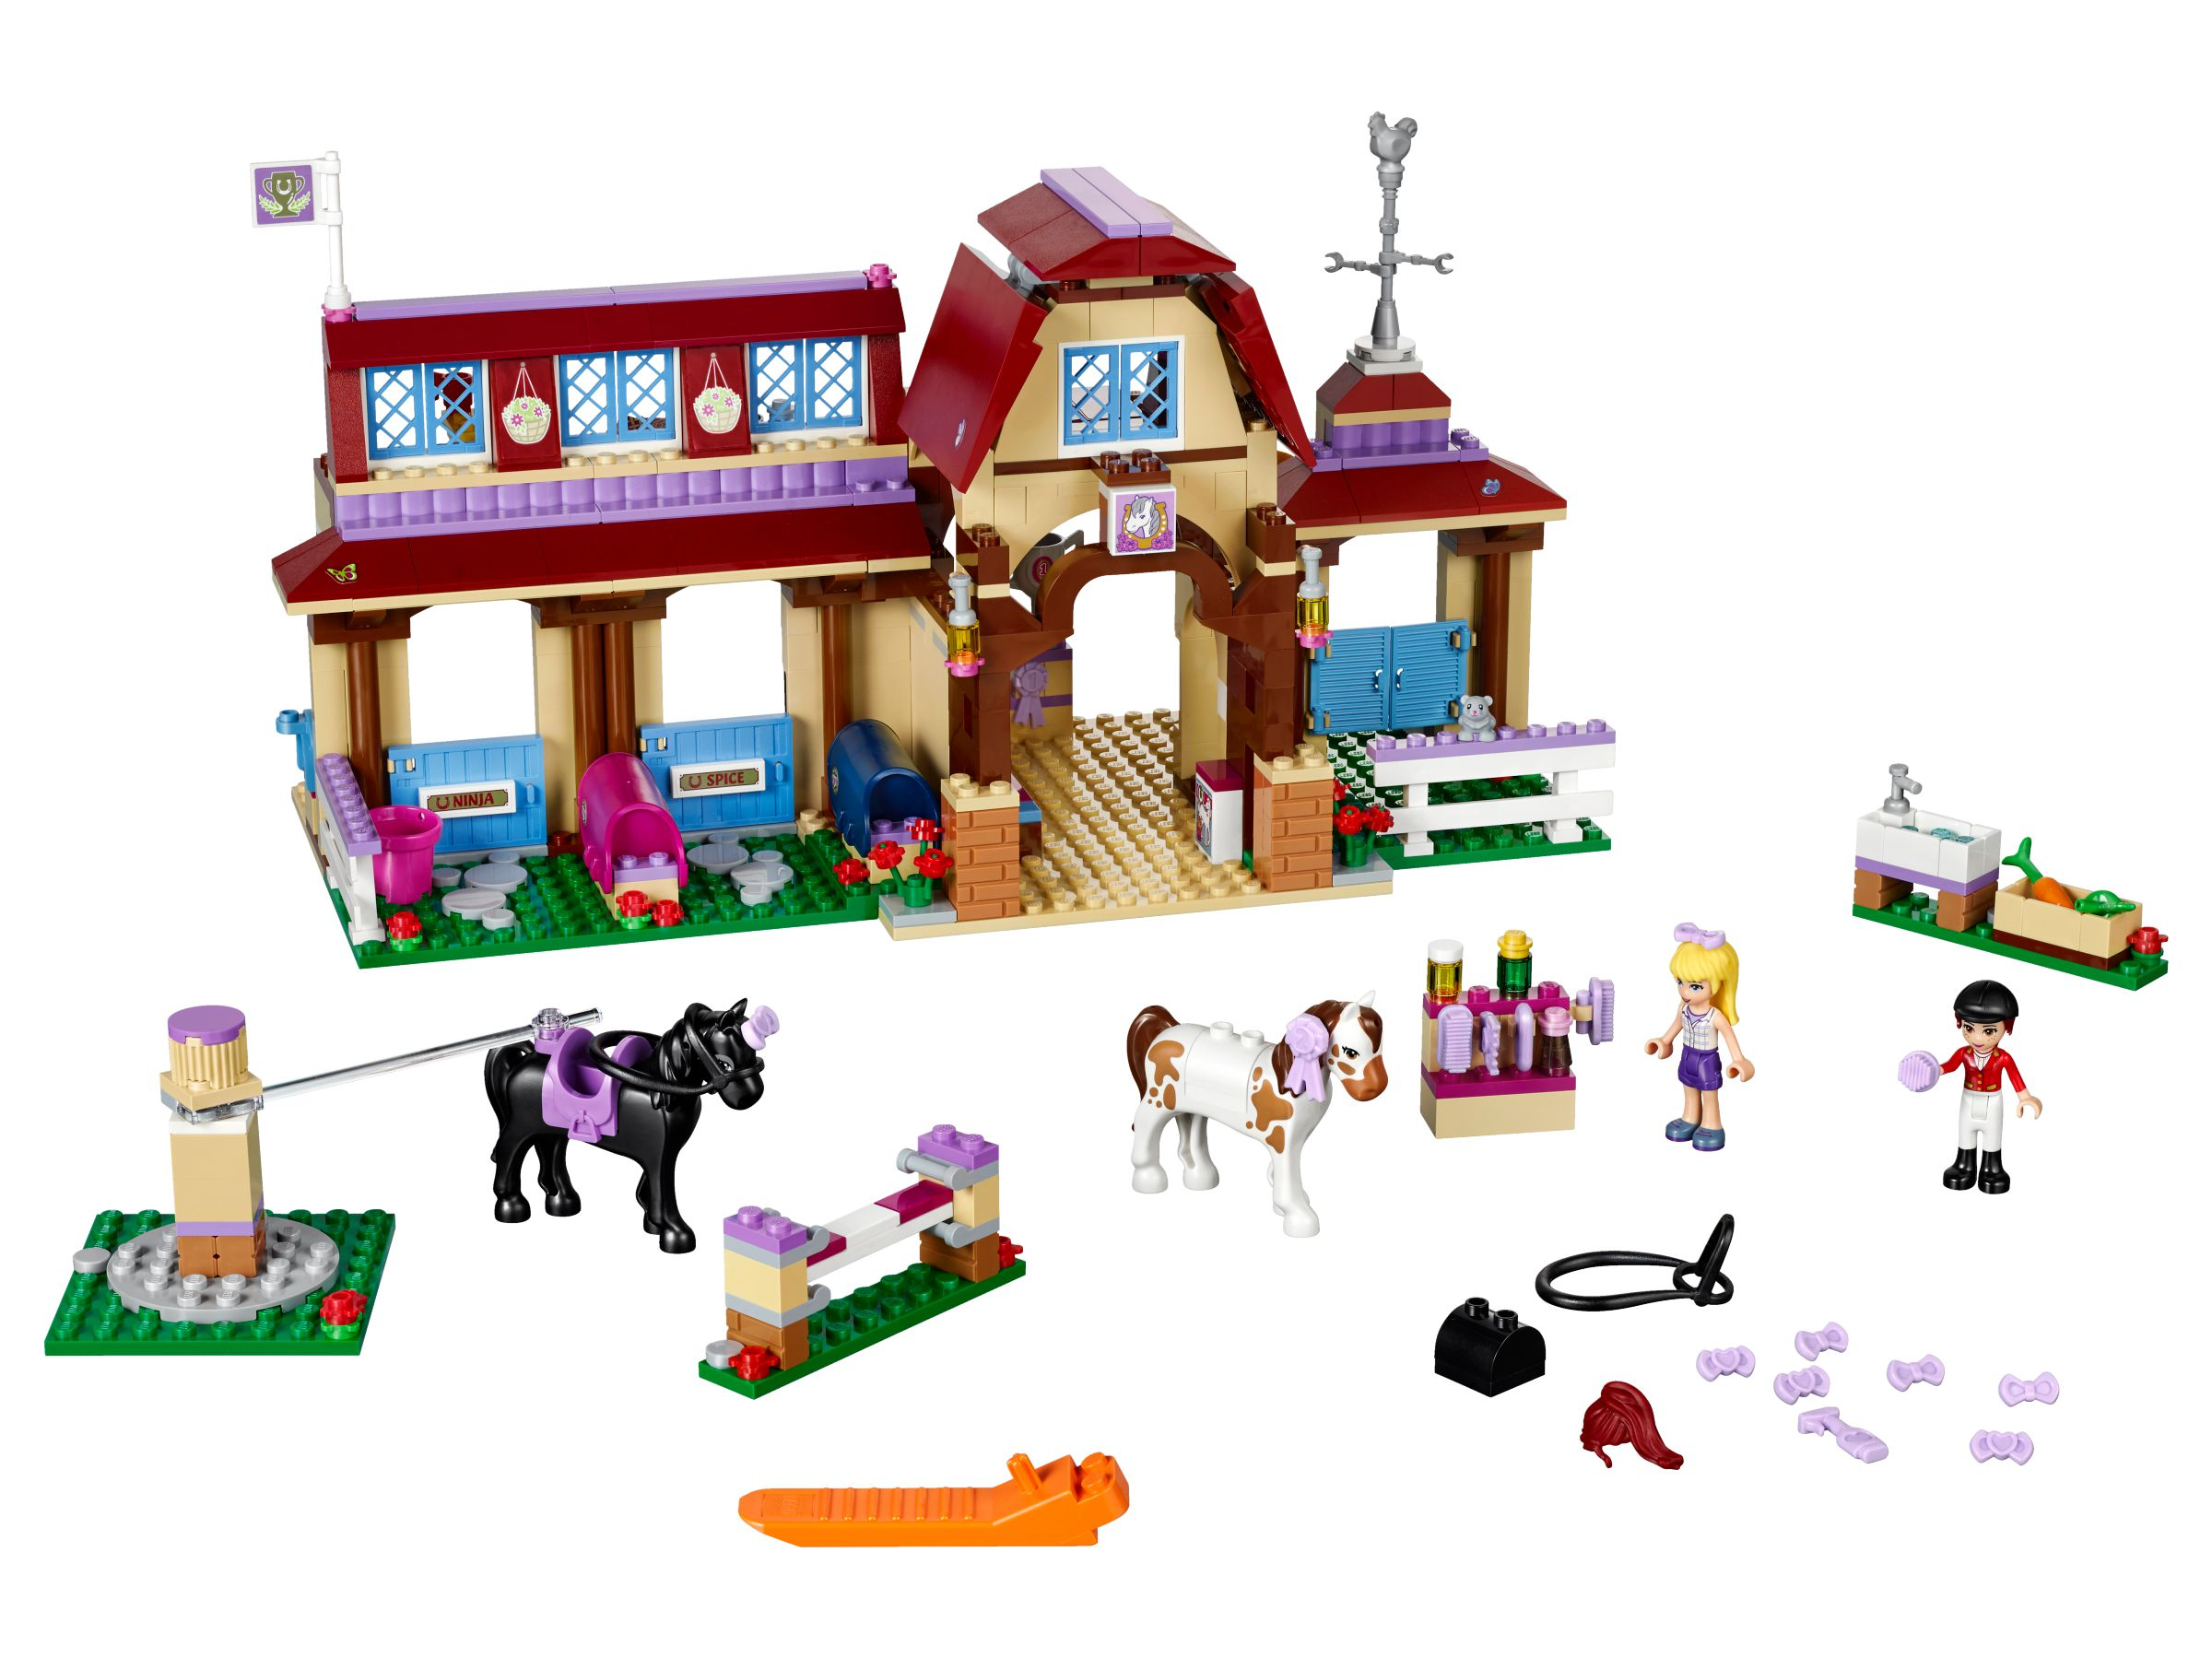 lego 41126 heartlake reiterhof friends 2016 ab 42 49 35 gespart heartlake riding club. Black Bedroom Furniture Sets. Home Design Ideas